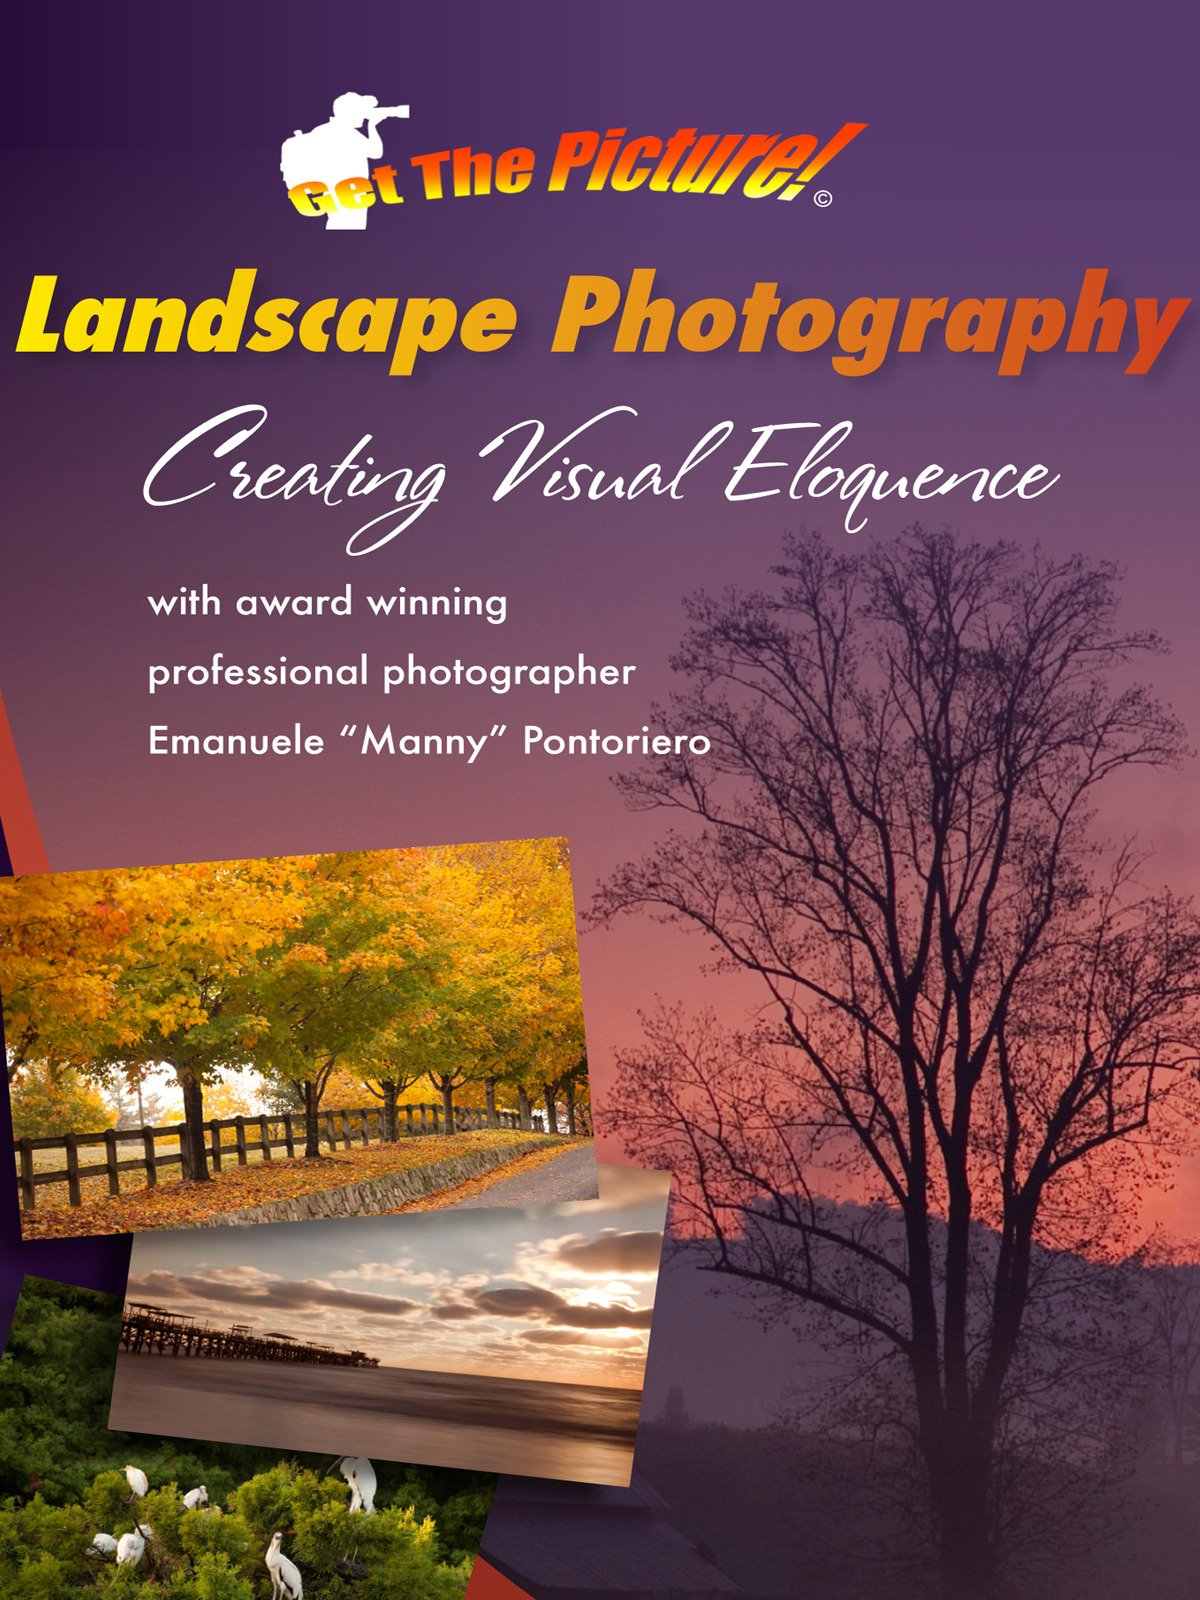 Landscape Photography: Creating Visual Eloquence on Amazon Prime Video UK